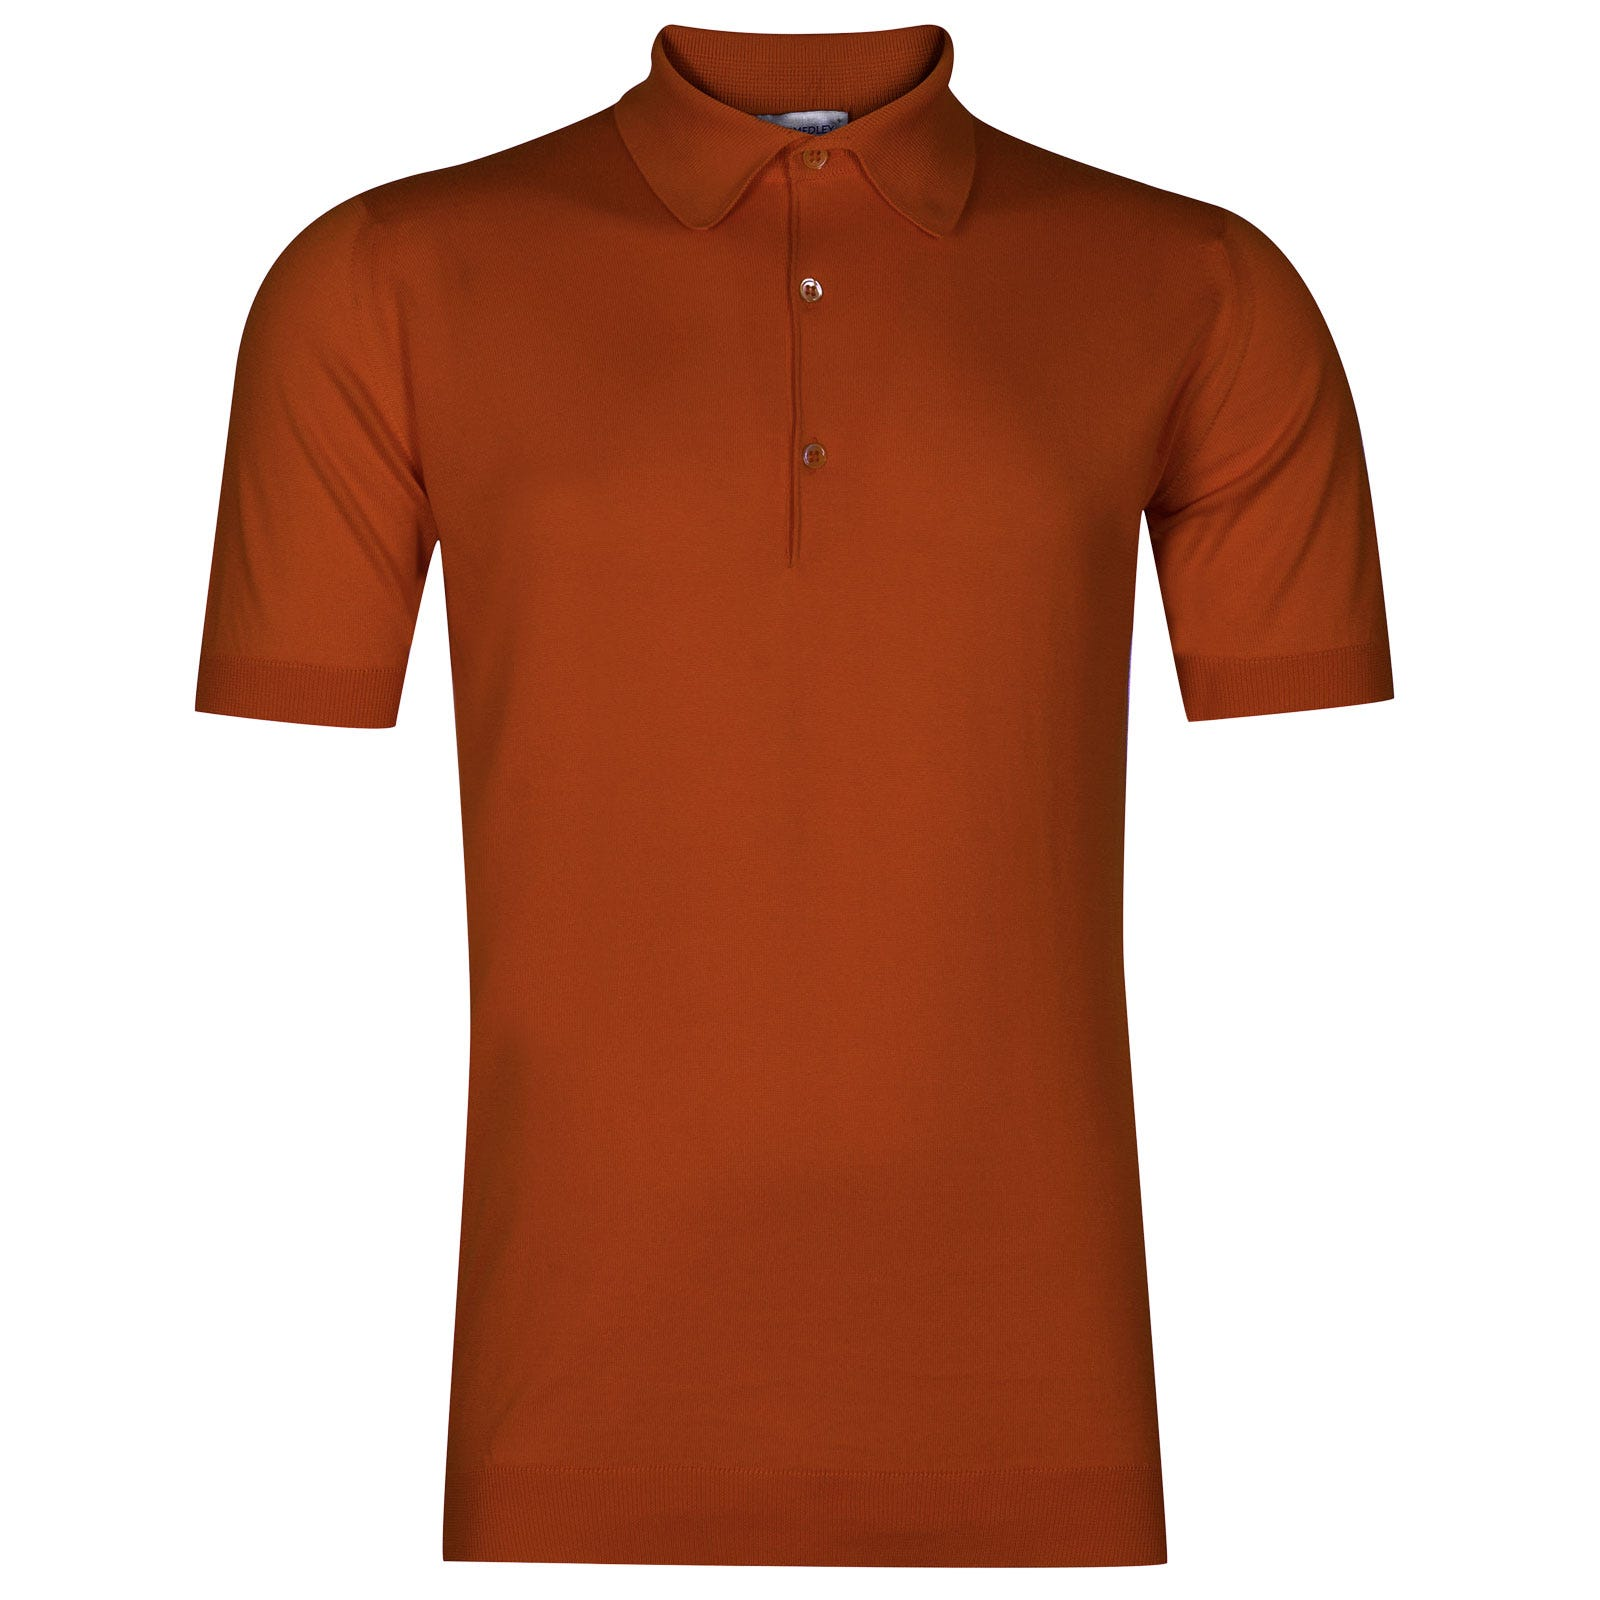 John Smedley adrian Sea Island Cotton Shirt in Flare Orange-S